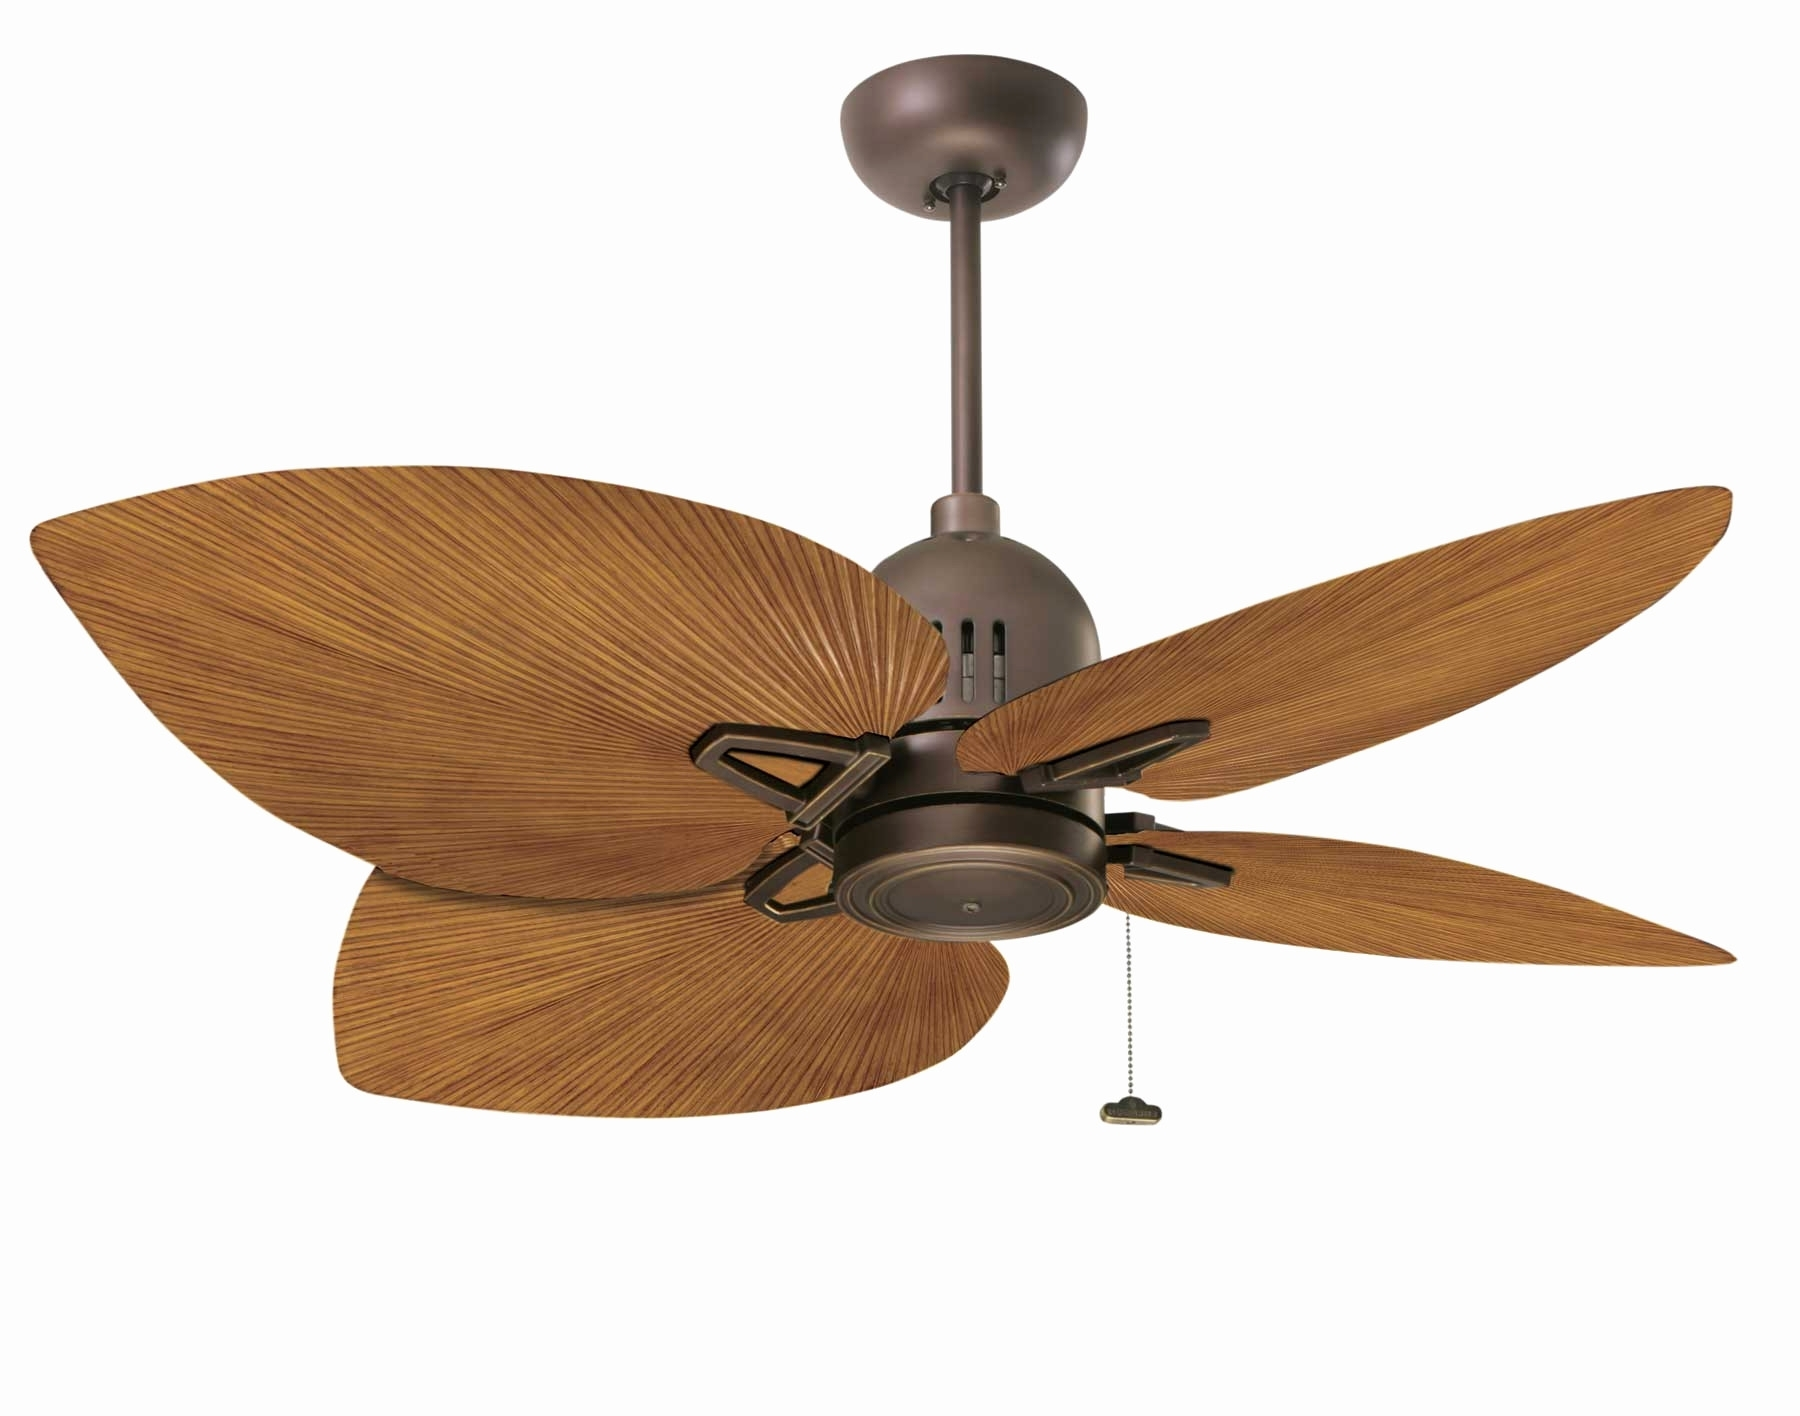 Tropical Outdoor Ceiling Fans Lovely Bigleaf Ceiling Fans Twin Pertaining To Most Up To Date Tropical Outdoor Ceiling Fans With Lights (View 13 of 20)